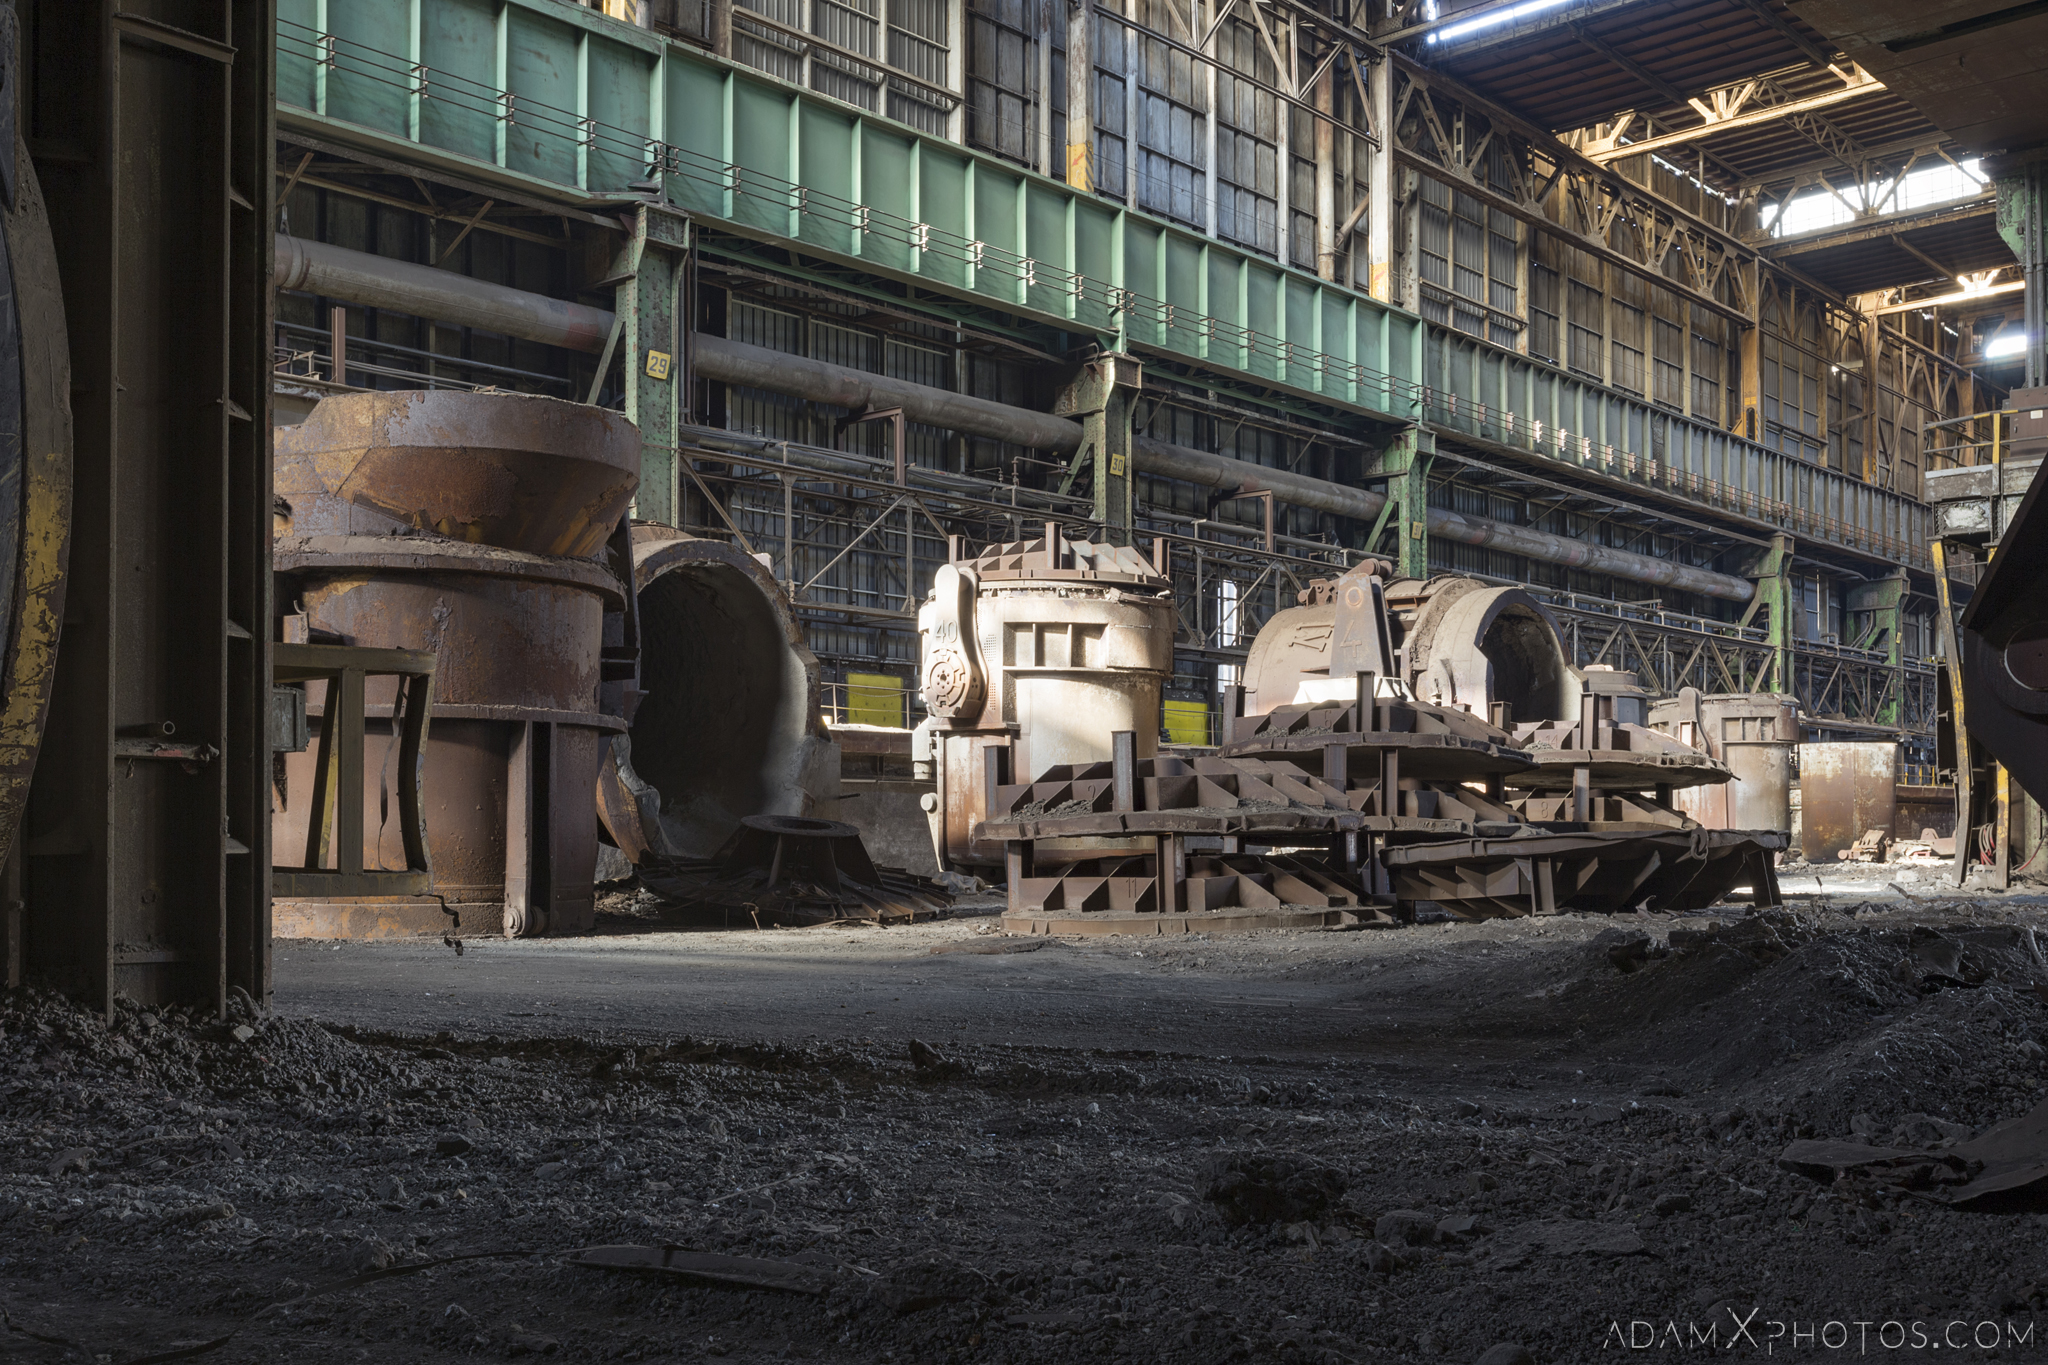 ladles HFX Florange Hayange ArcelorMittal blast furnaces steel works plant Industrial Industry Adam X Urbex Urban Exploration France Access 2017 Abandoned decay lost forgotten derelict location creepy haunting eerie